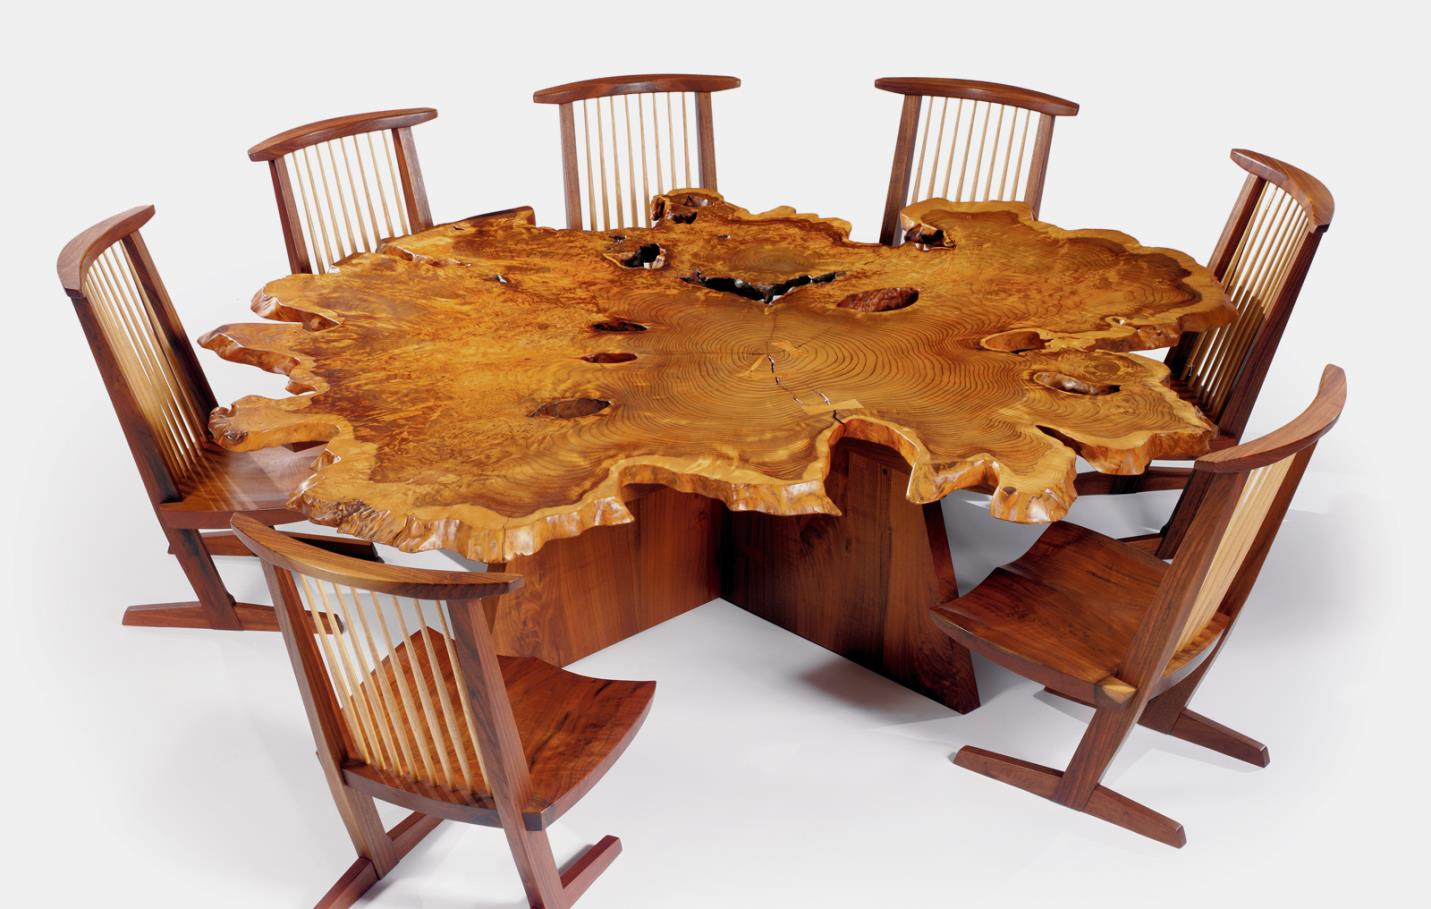 George Nakashimau0027s U201cArlynu201d Table   Redwood, Black Walnut, Madrone Burl, And